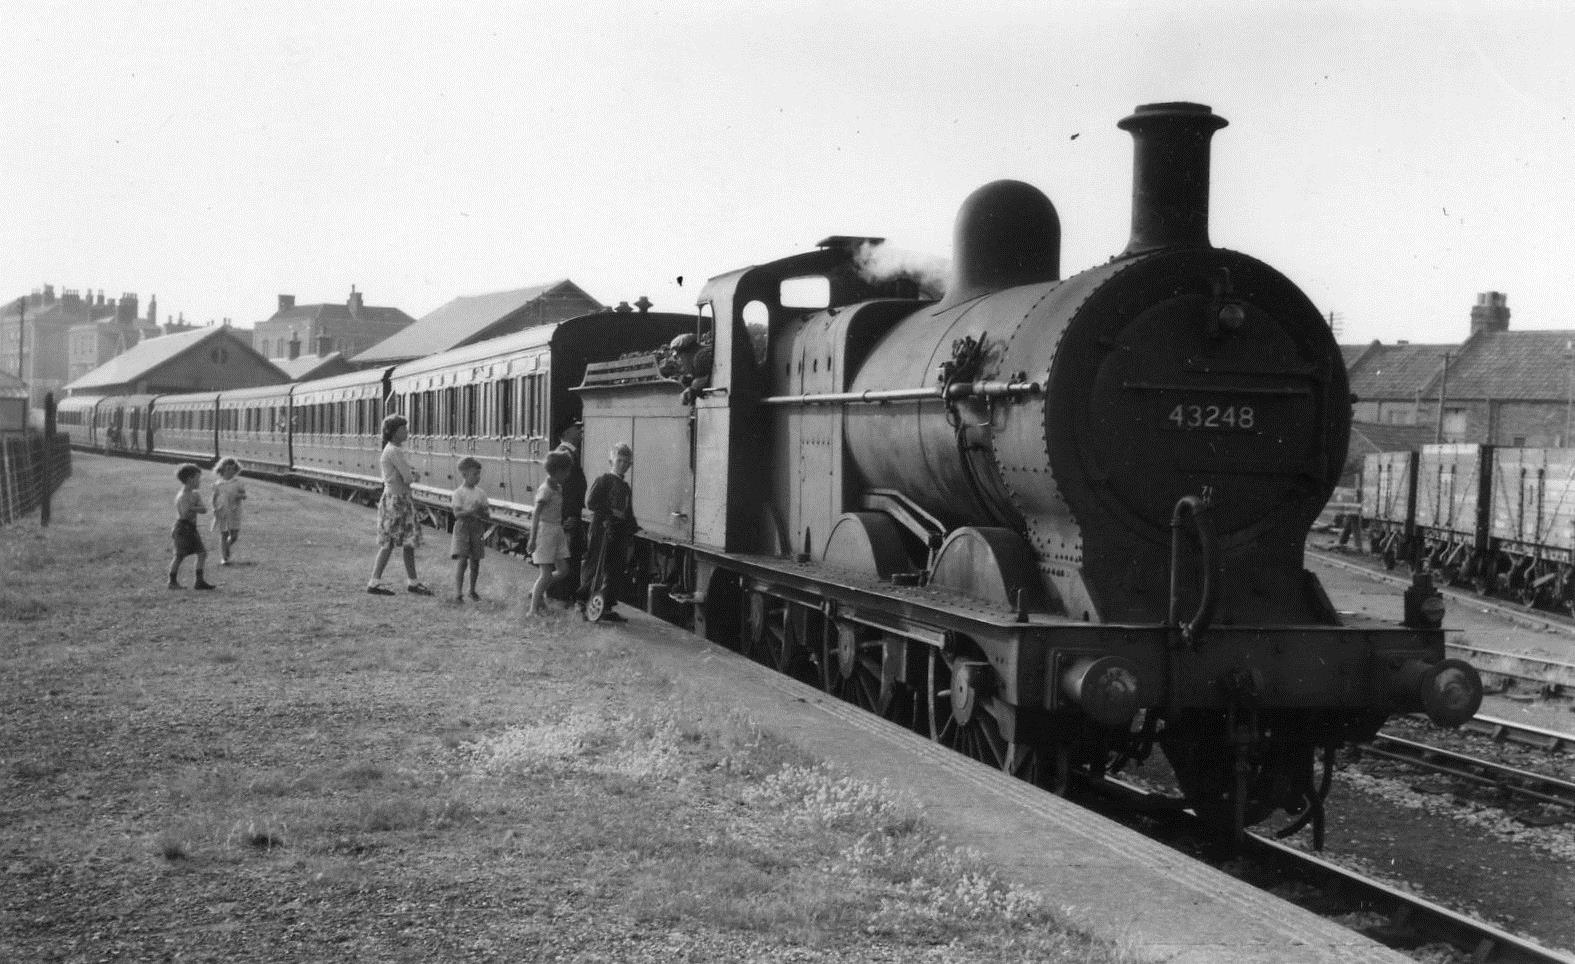 Train about the leave the Excursion Platform on 30th July 1955.Of interest The children are - from left to right - David Strickland, Sara Trotman, Christine Calvary, John Strickland, Judith Stevenson and Lenard Thompson.